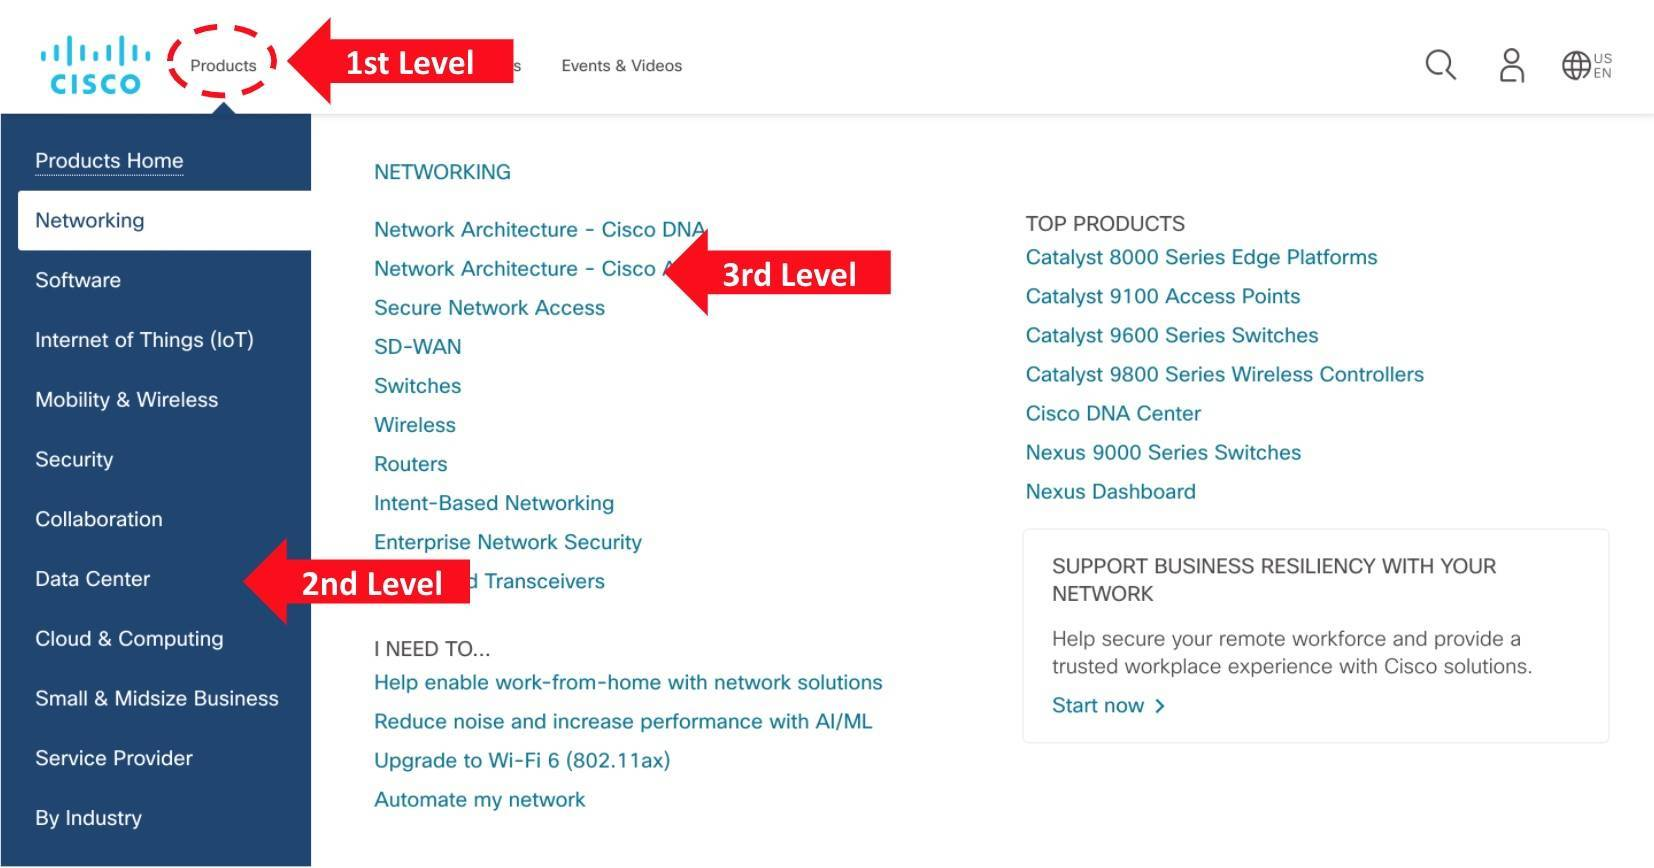 example of the expanded navigation menu on the Cisco website homepage